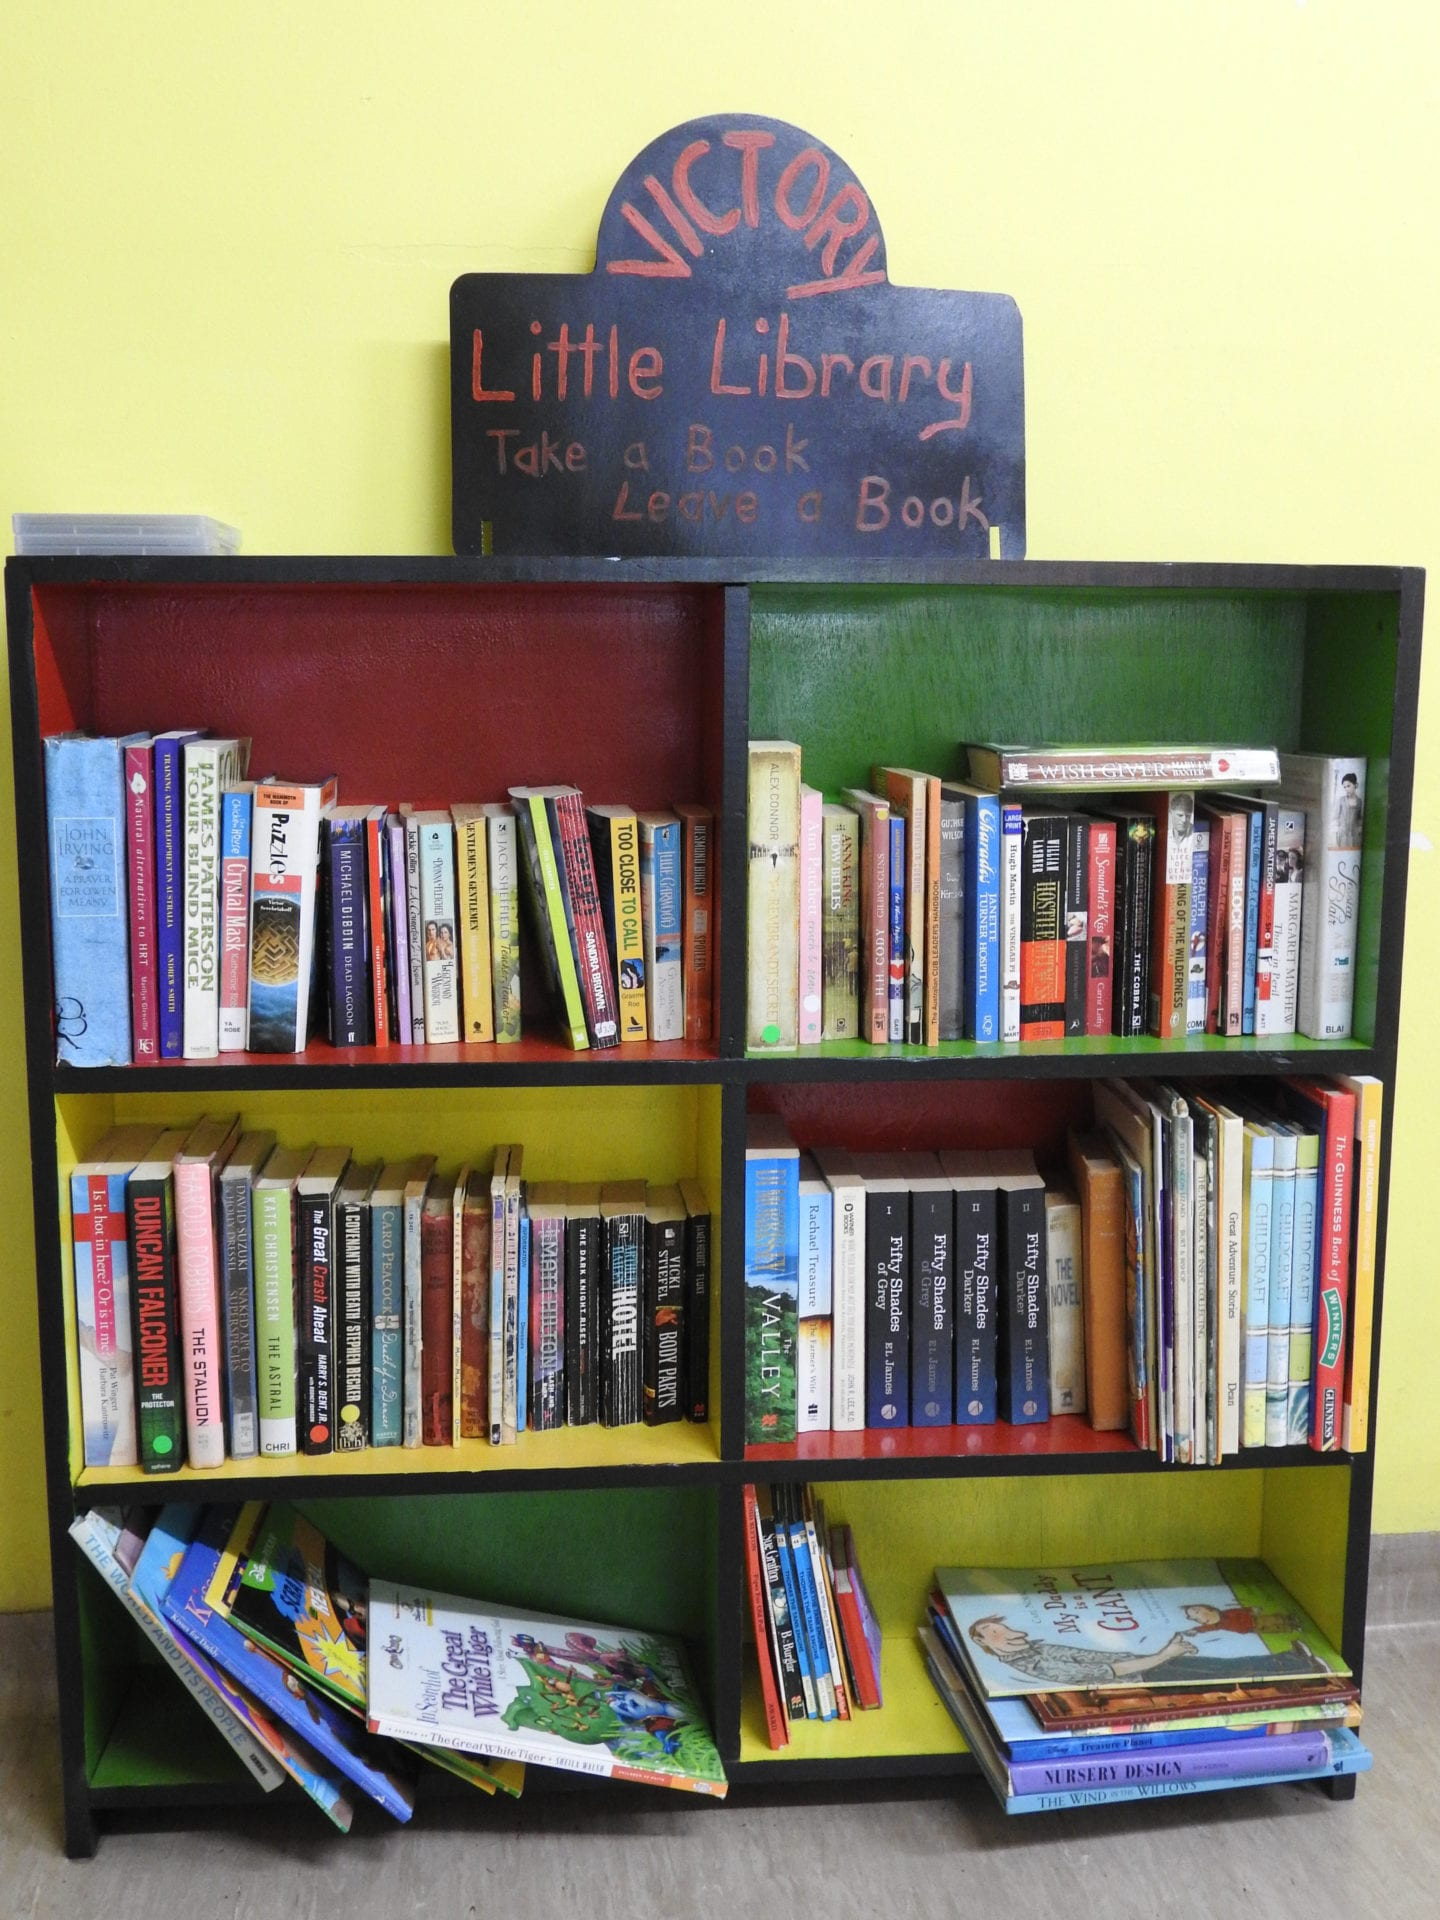 Victory Cafe Little Library